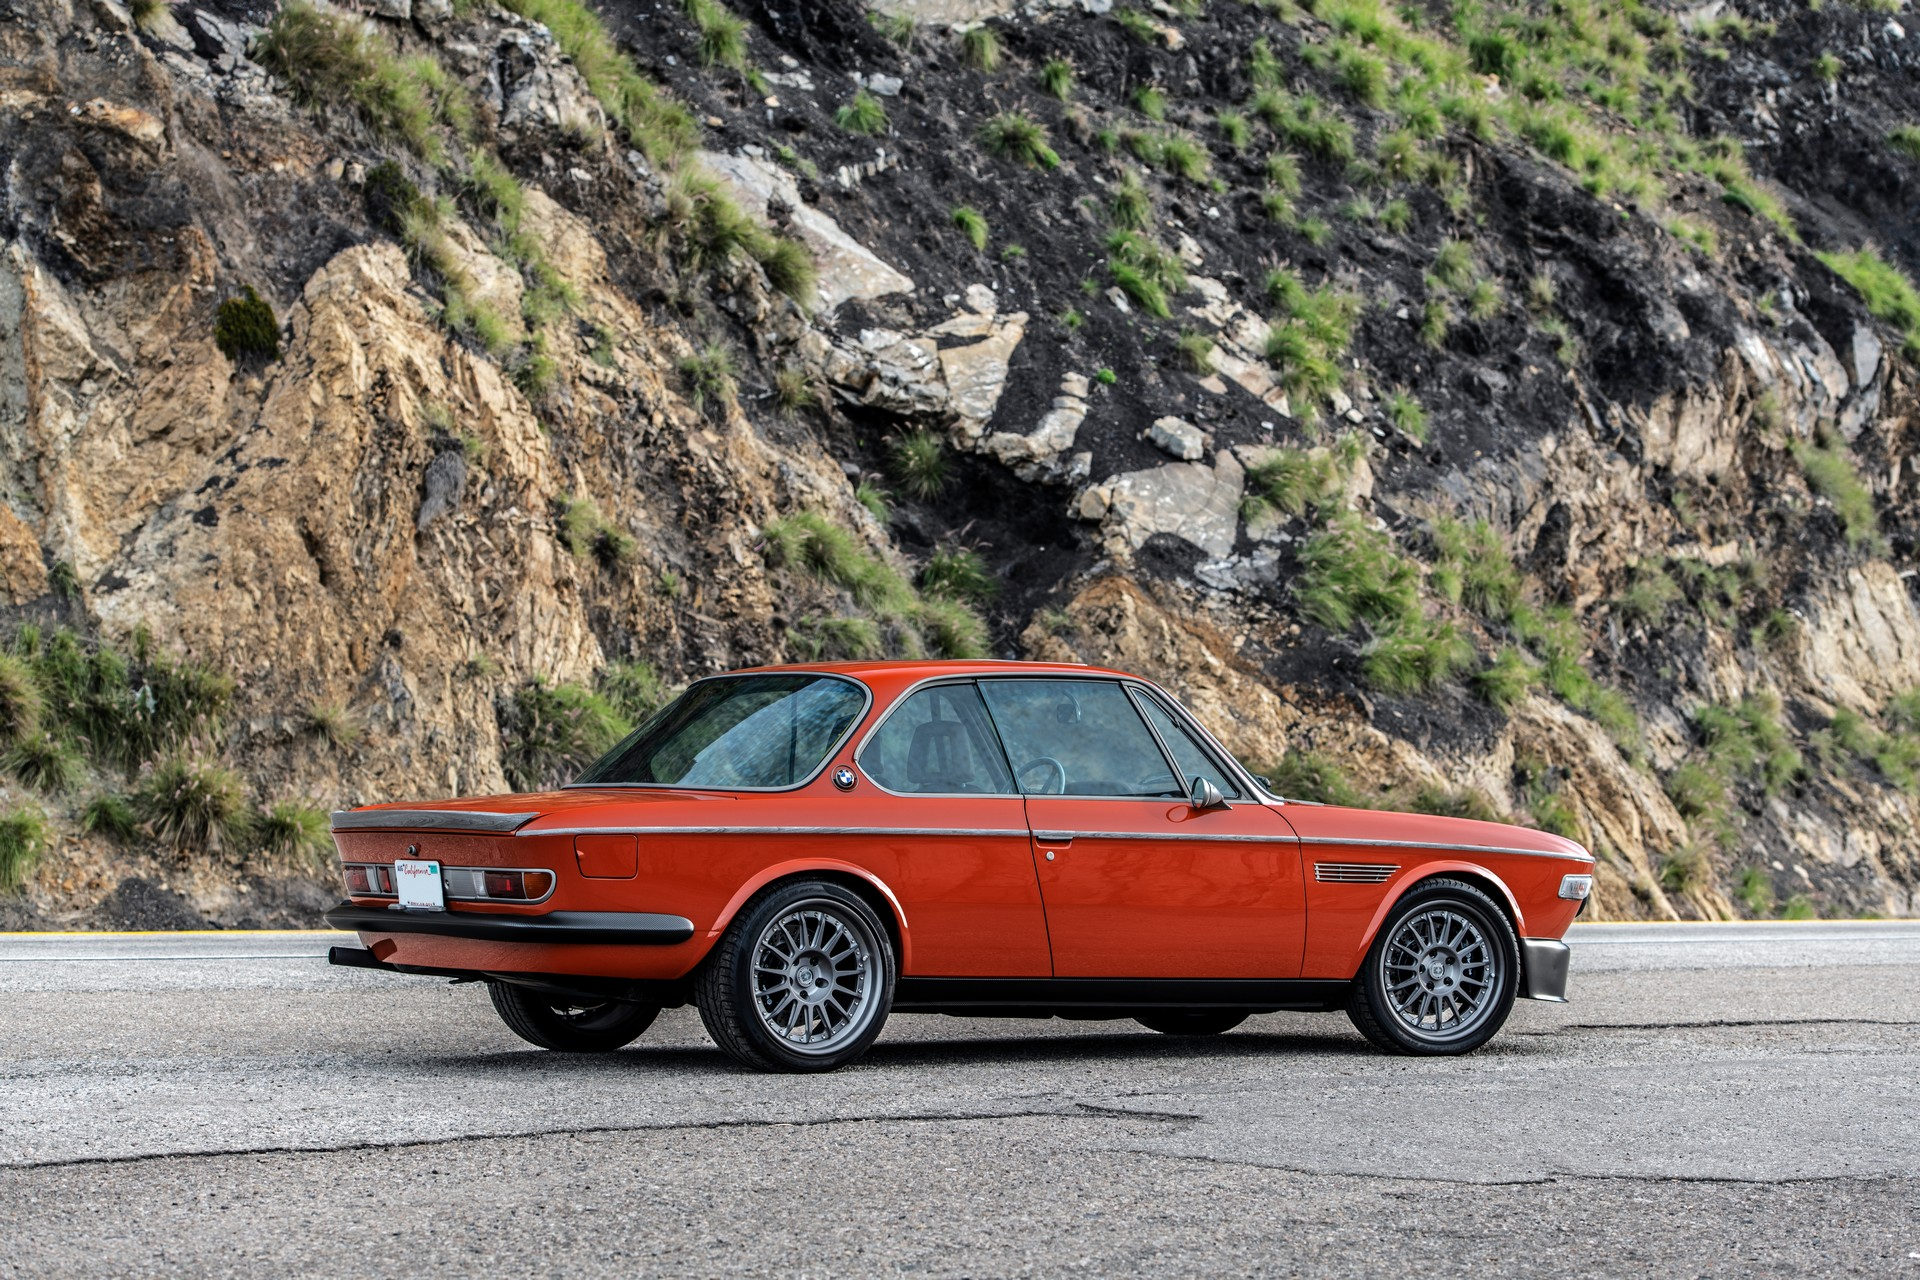 SPEEDKORE-1974-BMW-3.0-CS-7